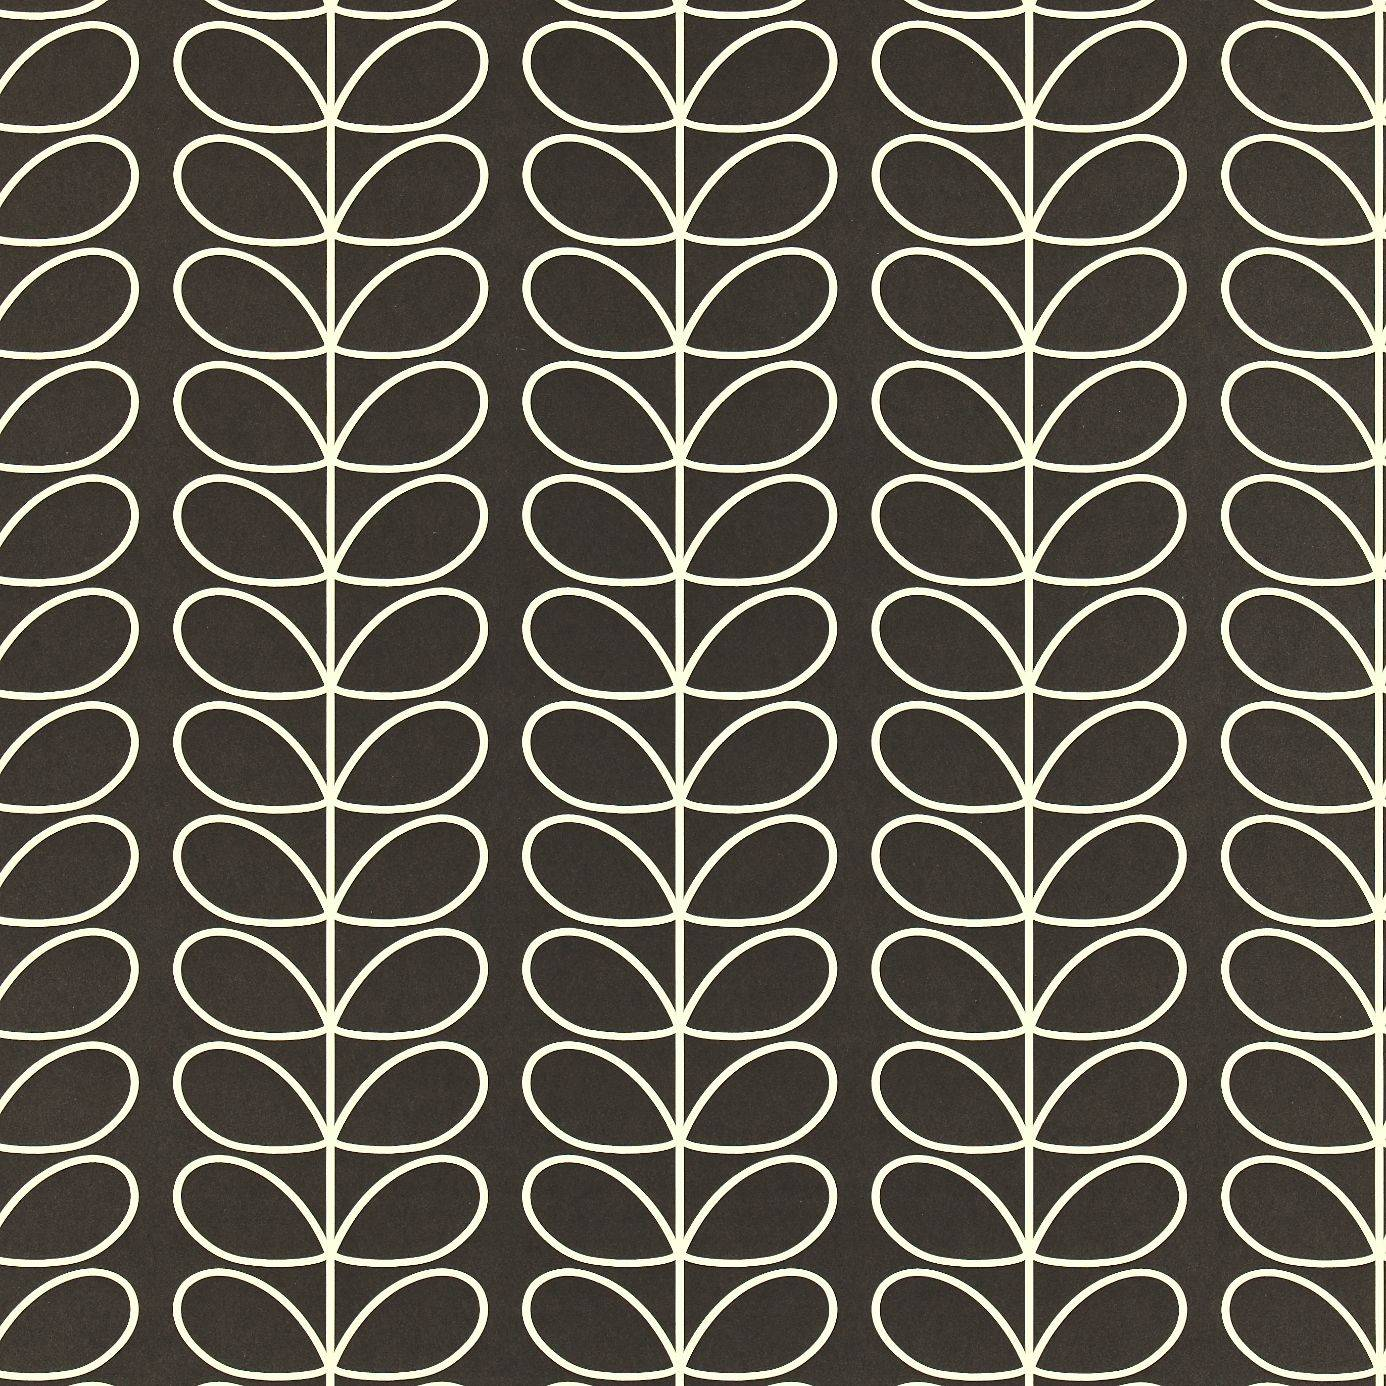 Harlequin Orla Kiely Wallpapers Linear Stem Wallpaper - Graphite - 110398. Loading zoom